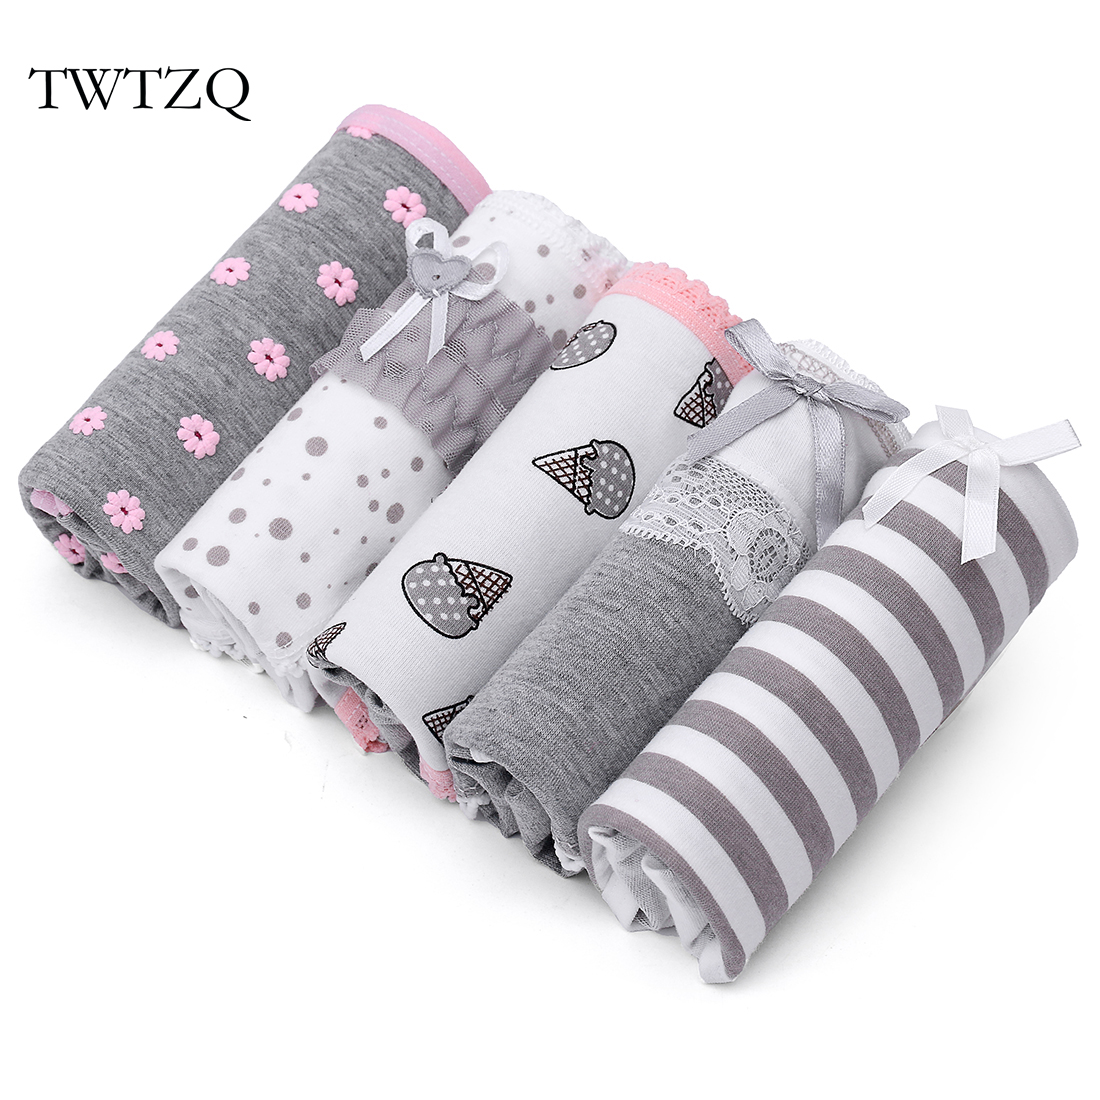 TWTZQ 5Pcs/Lot Flower Striped Women Cotton Briefs Underwear Bow Mid-Waist Panties Ladies Girl Flower Women Panties 3NK019 ...